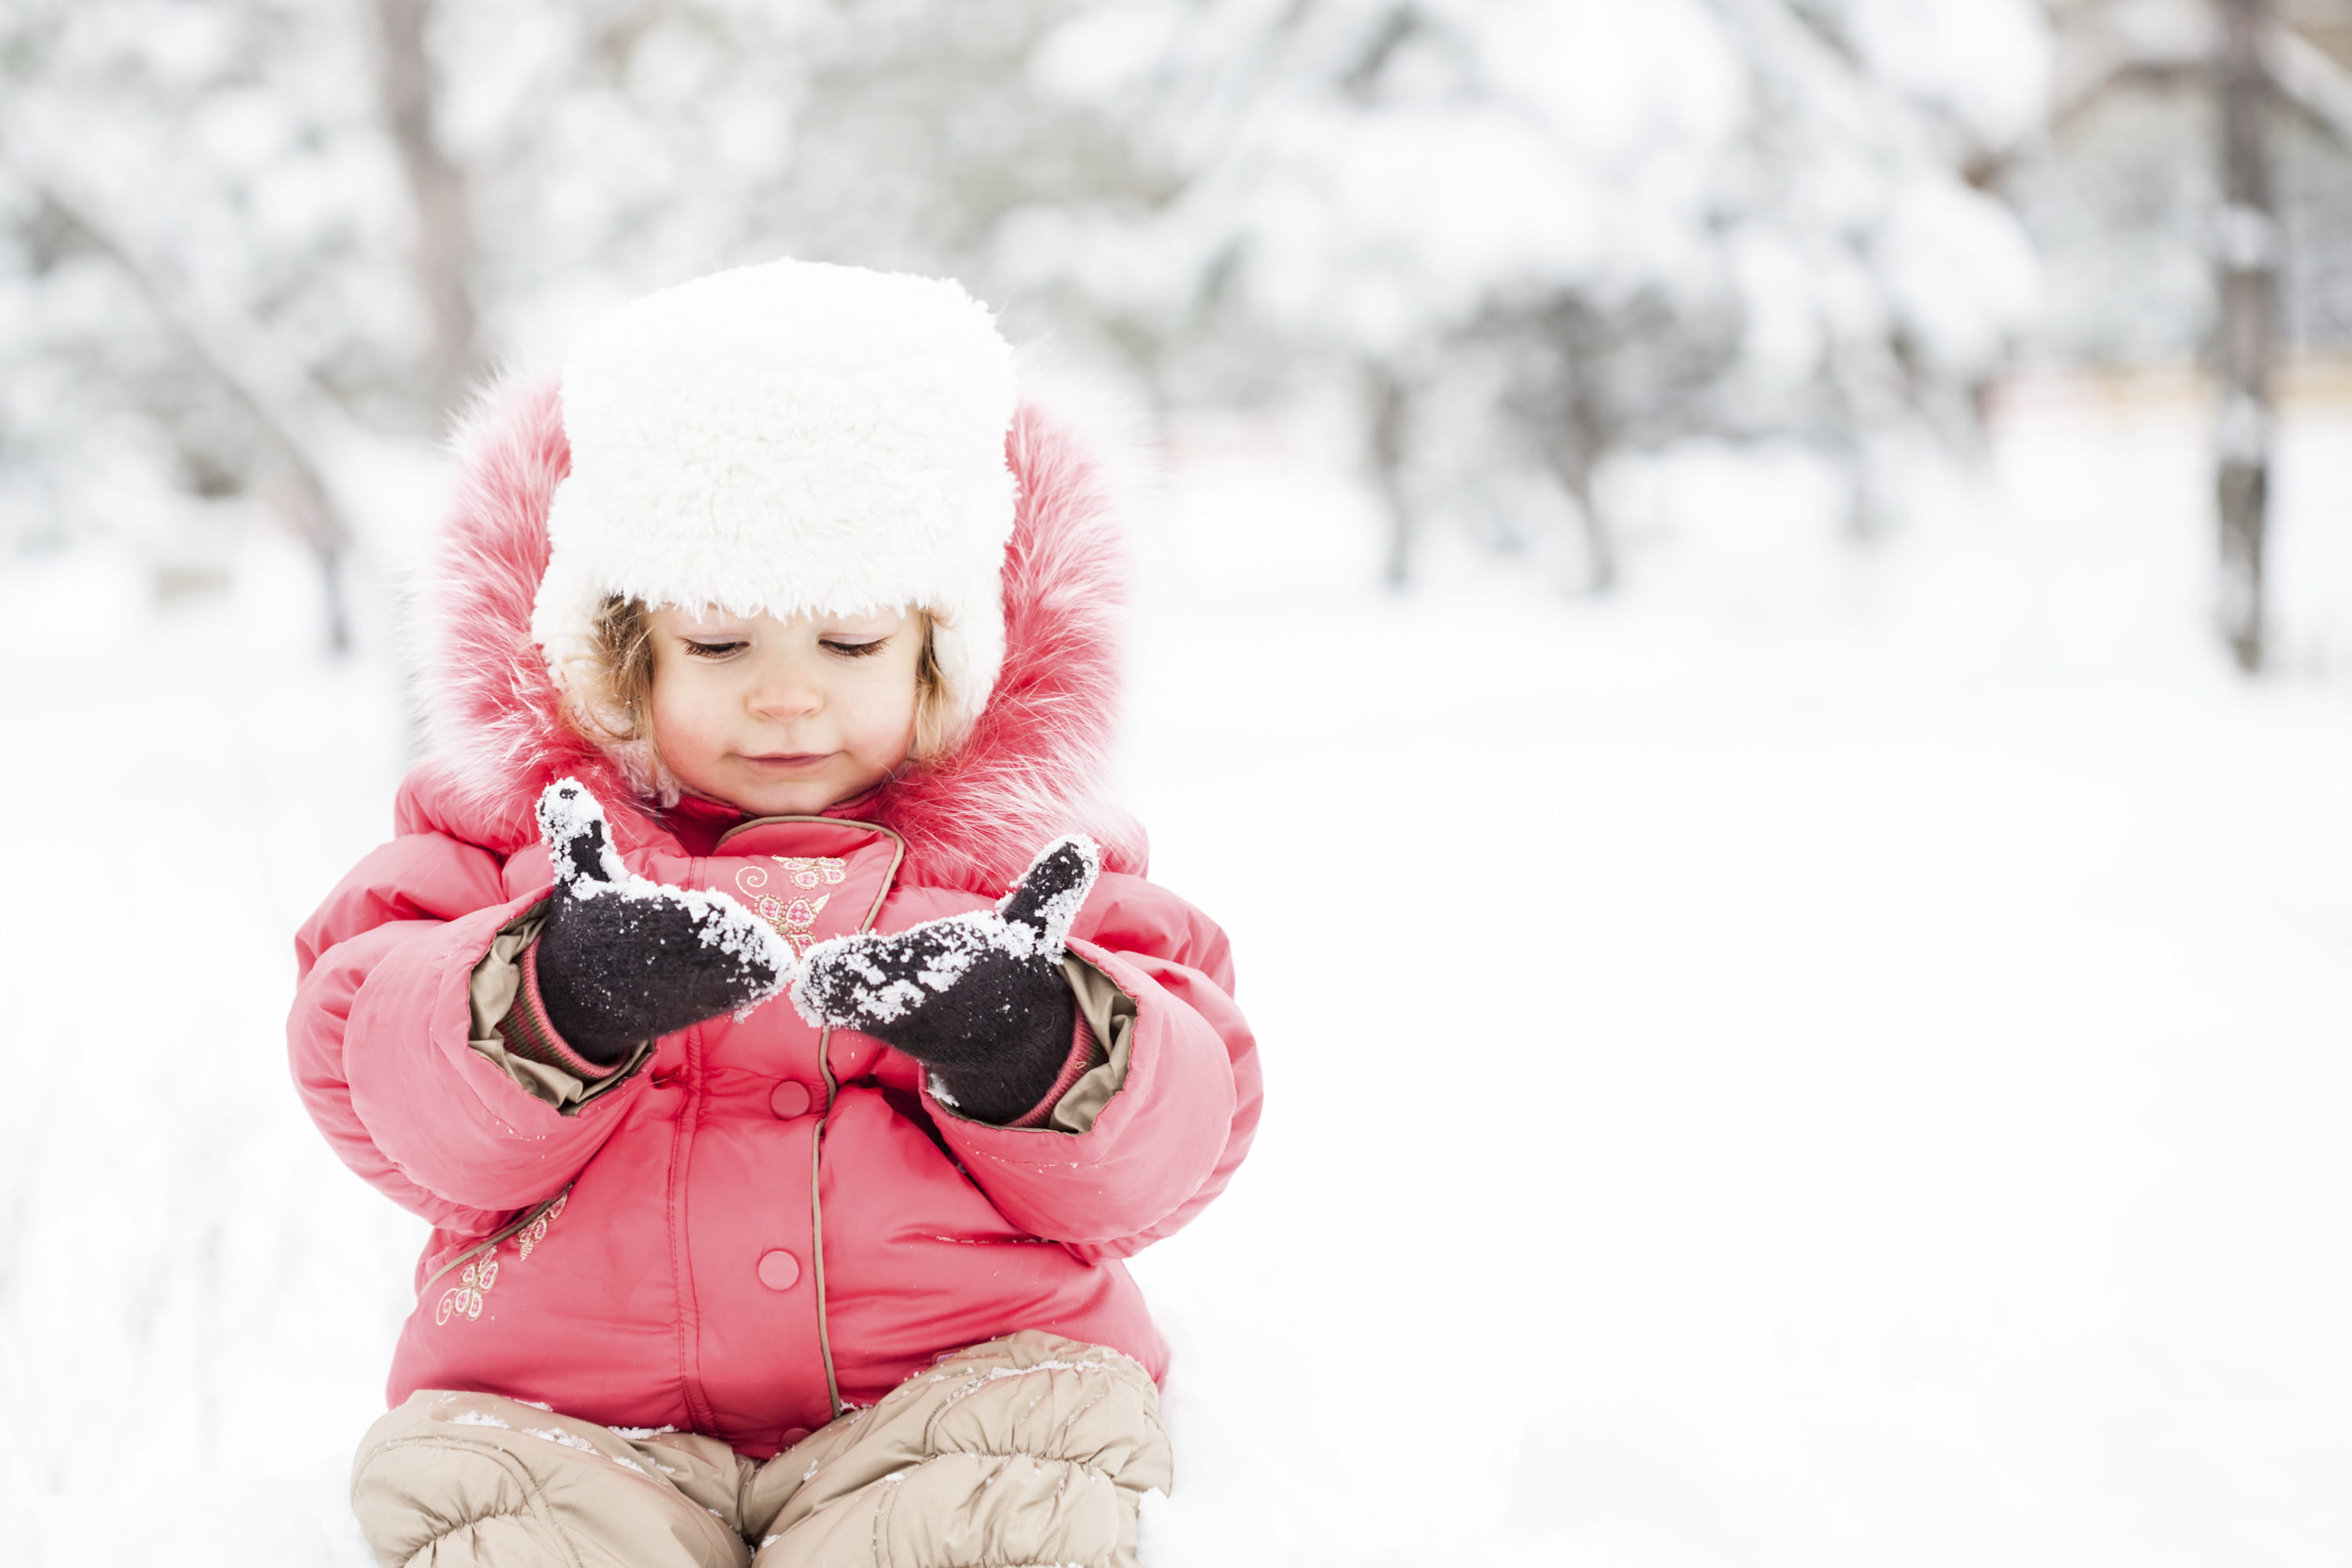 Find out if your local Bright Horizons nursery has been affected by adverse weather